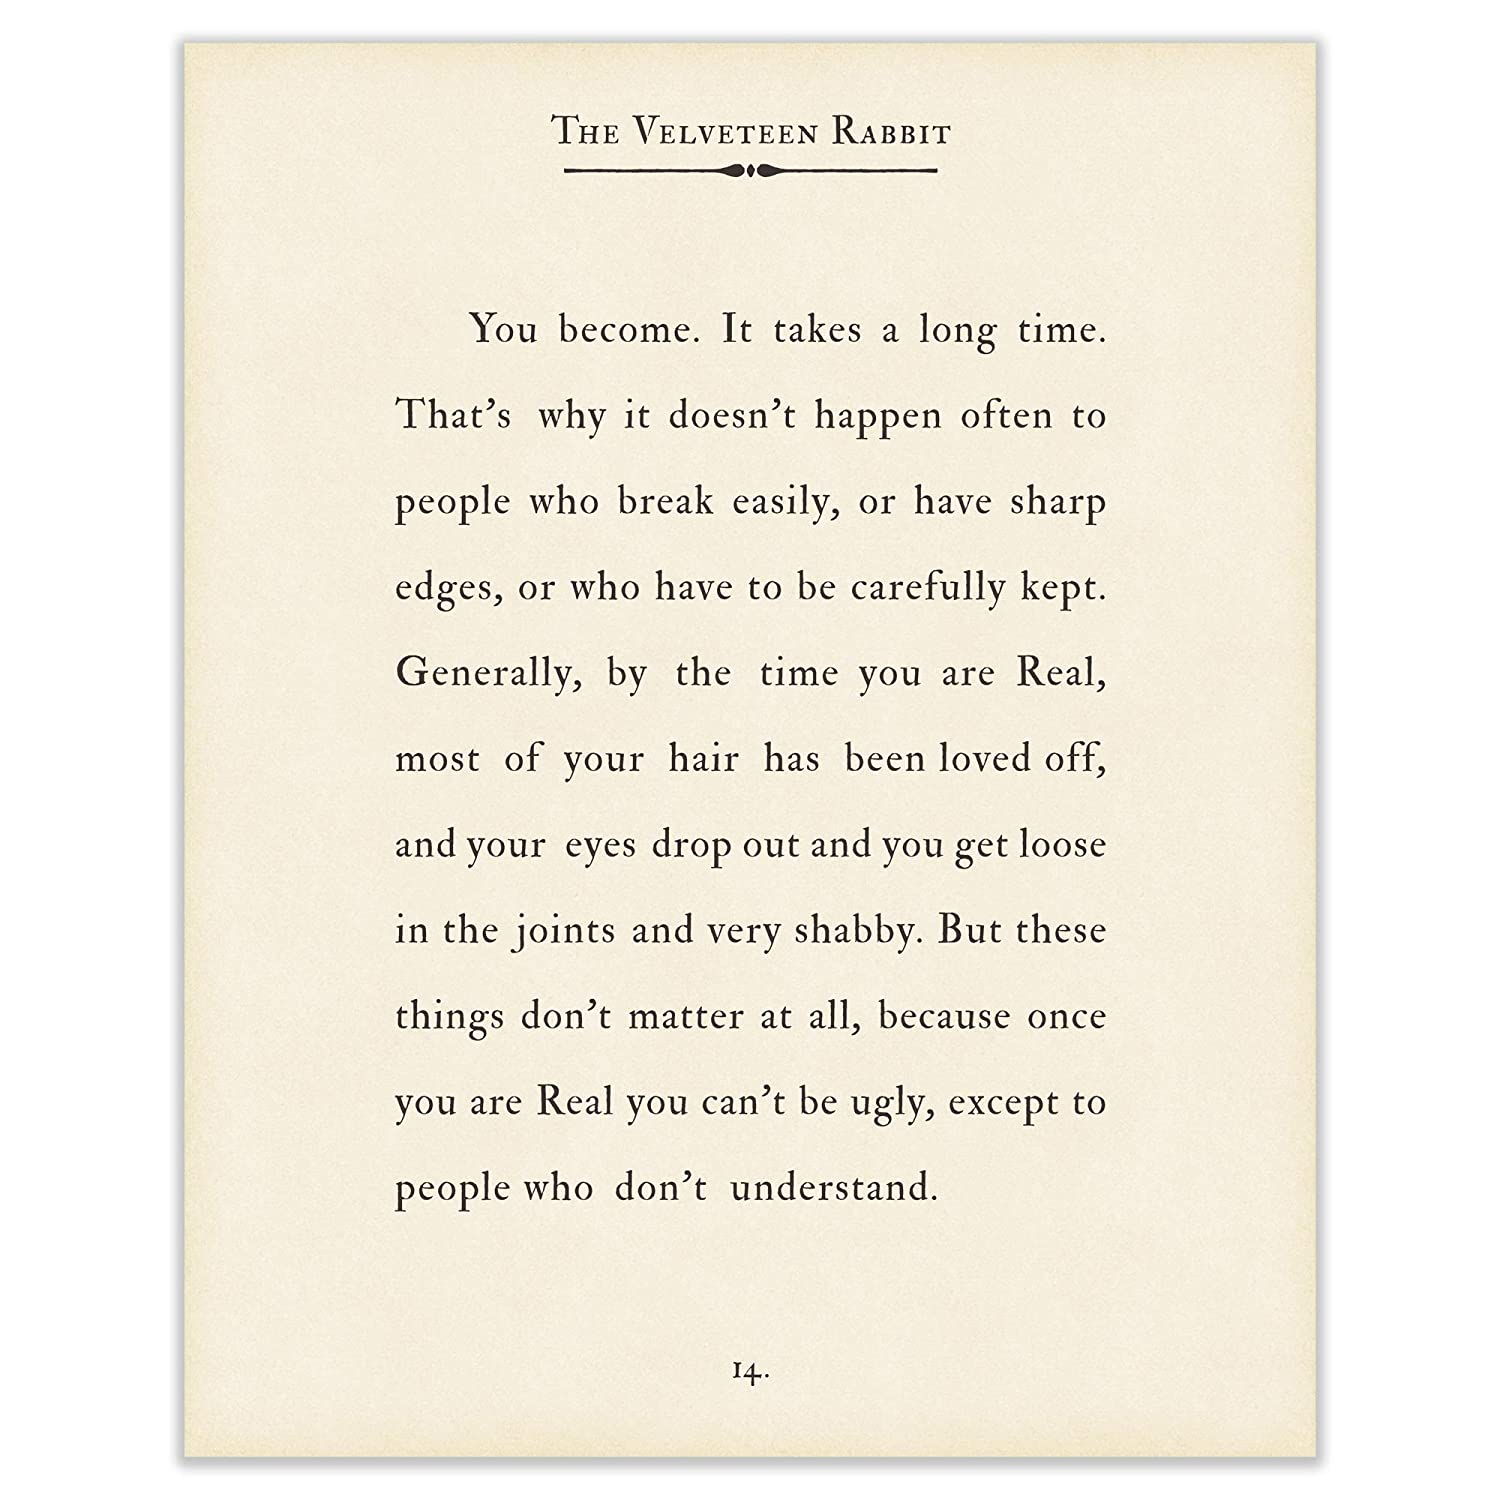 Amazon.com: Art of Observation Velveteen Rabbit Quote Book ...